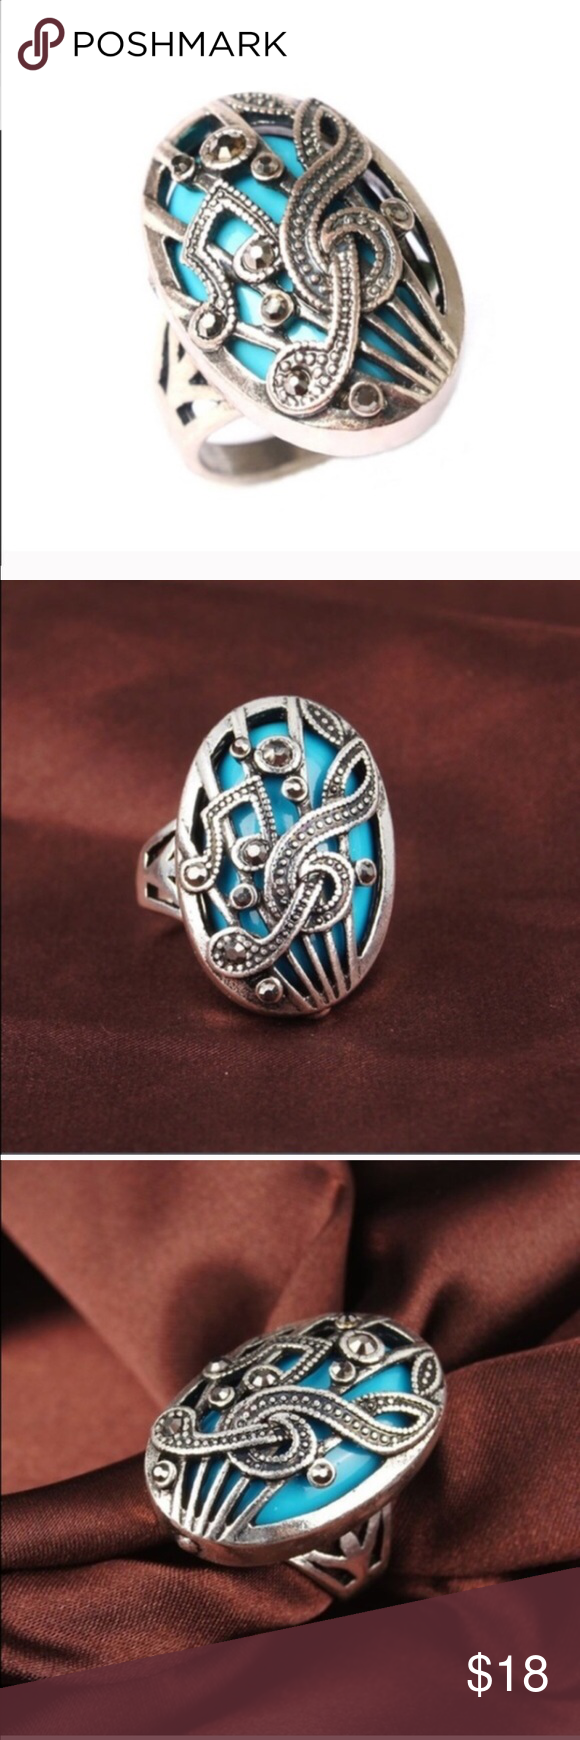 BACK IN STOCK Silver/Turquoise Music Note Ring I have 2 size 7's available. This ring is so pretty and one of my best sellers. It's really as pretty as the picture.  Jewelry Rings